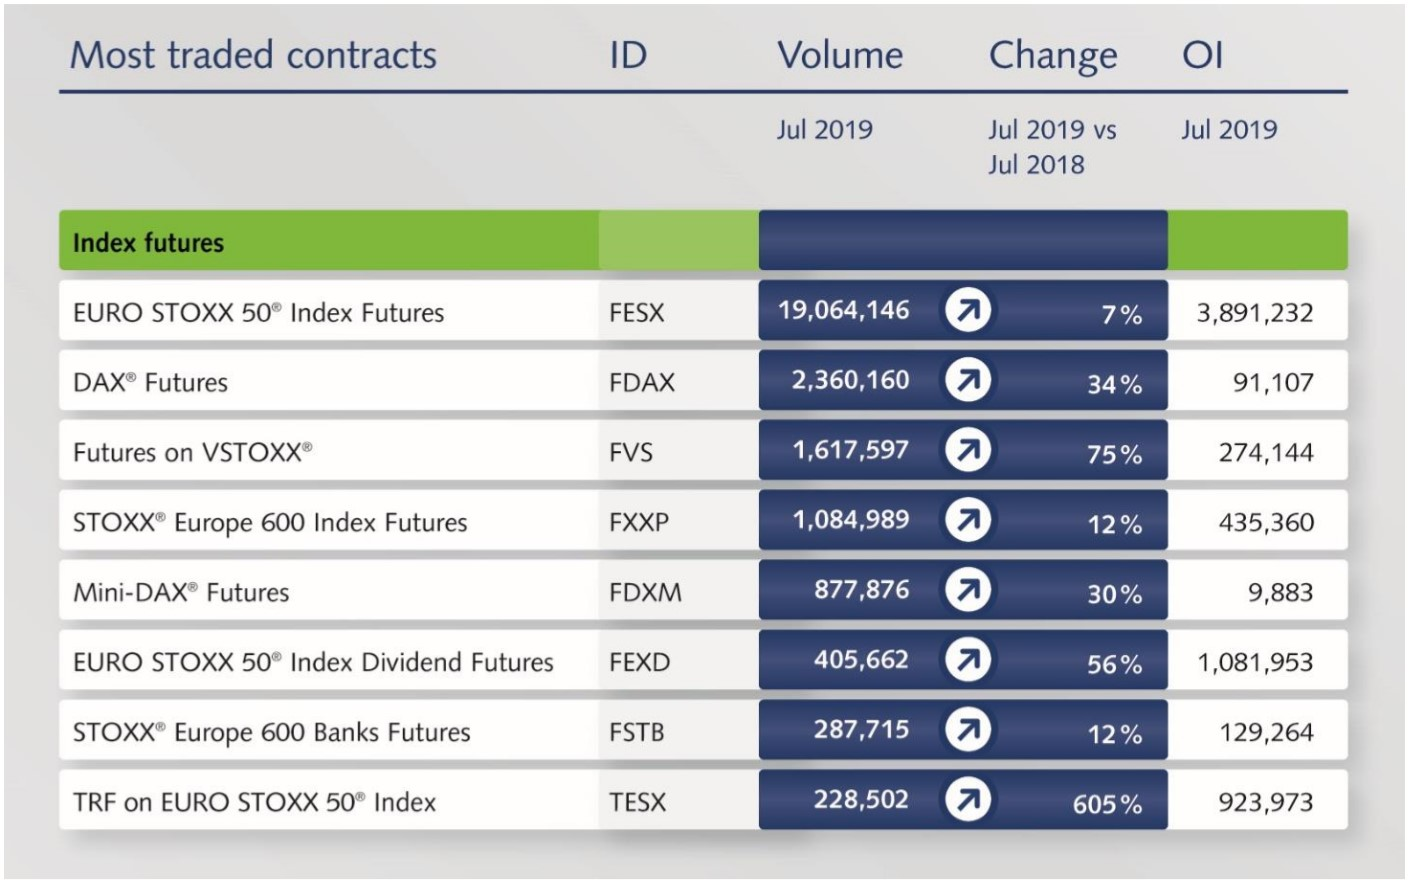 Chart showing details of most traded contracts: name, ID, volume for July 2019, change July 2018 vs July 2019, and OI July 2019